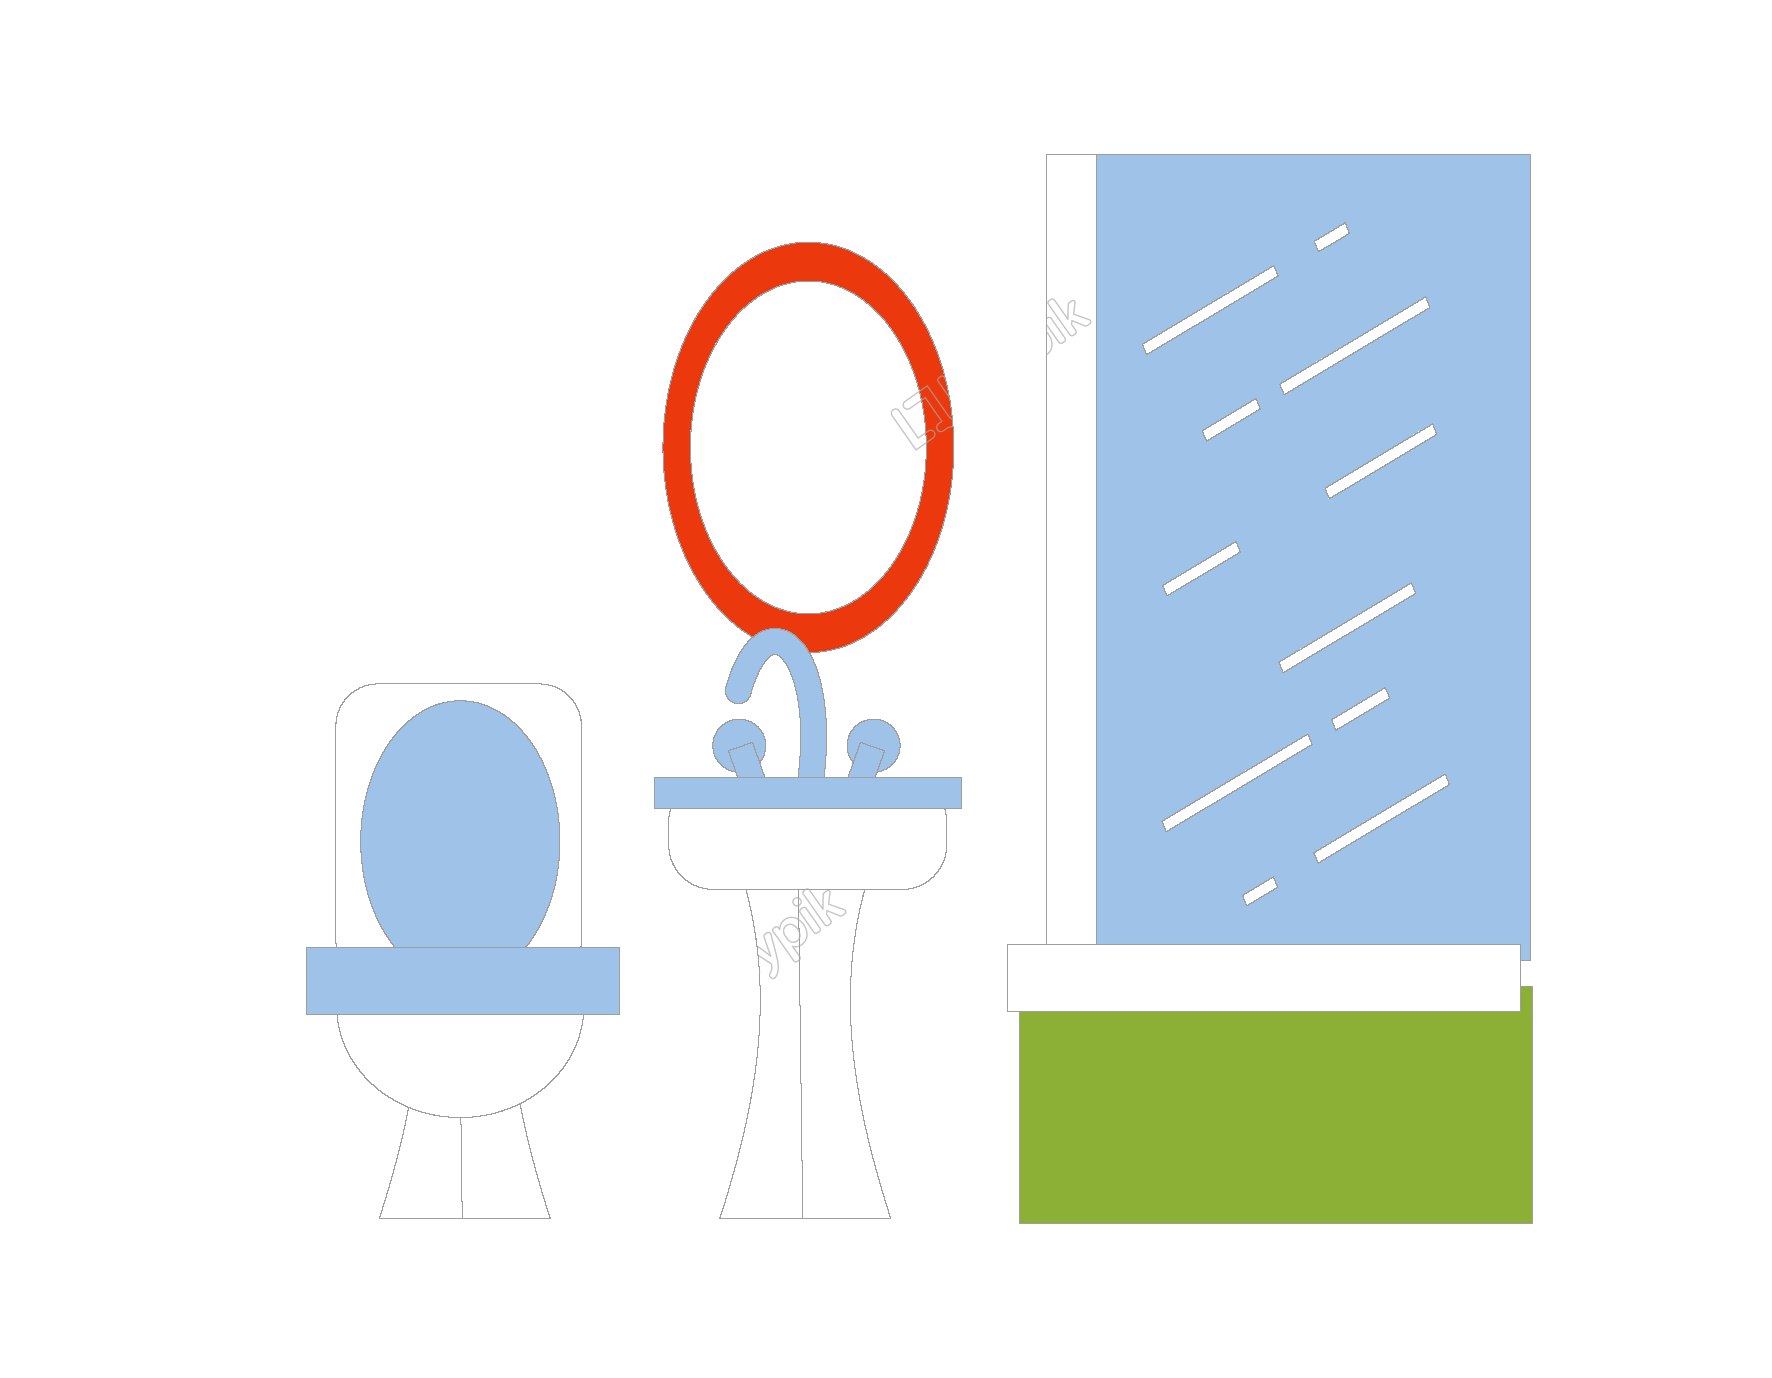 Bathroom vector background. Hand drawn elements free